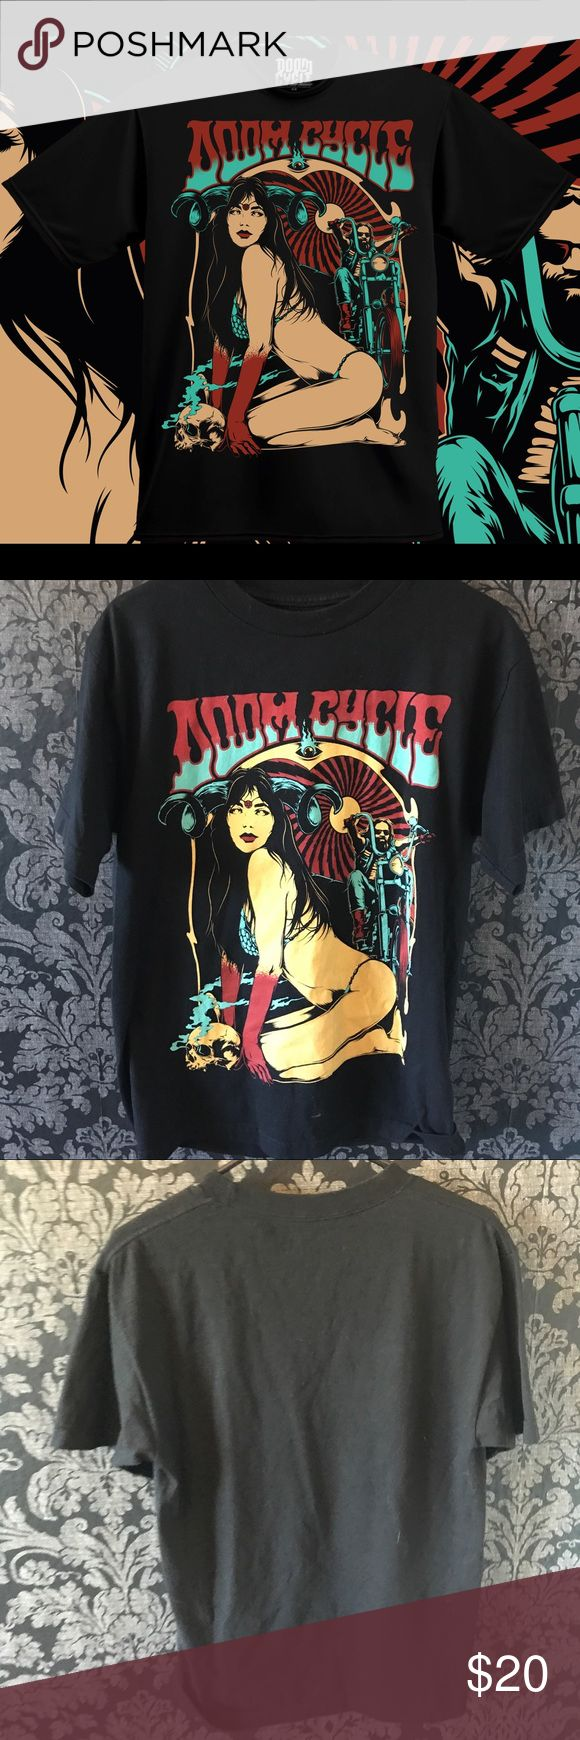 Doom Cycle Nyx Berndt Tee Black men's tee shirt with a crew neck and short sleeve, trip color print in yellow, red, and bright blue or cyan. Doom cycle motorcycle trippy shirt with psychedelic groovy font wording that imitates stoner metal tees. Print shows a Bikini near nude woman Saturday with ram antlers covered in blood with a man on a motorcycle behind her and a skull and smoke. Never before worn. Size medium. Occult, Harley Davidson, chopper, biker, metal, pagan, devil, Satan, satanic…